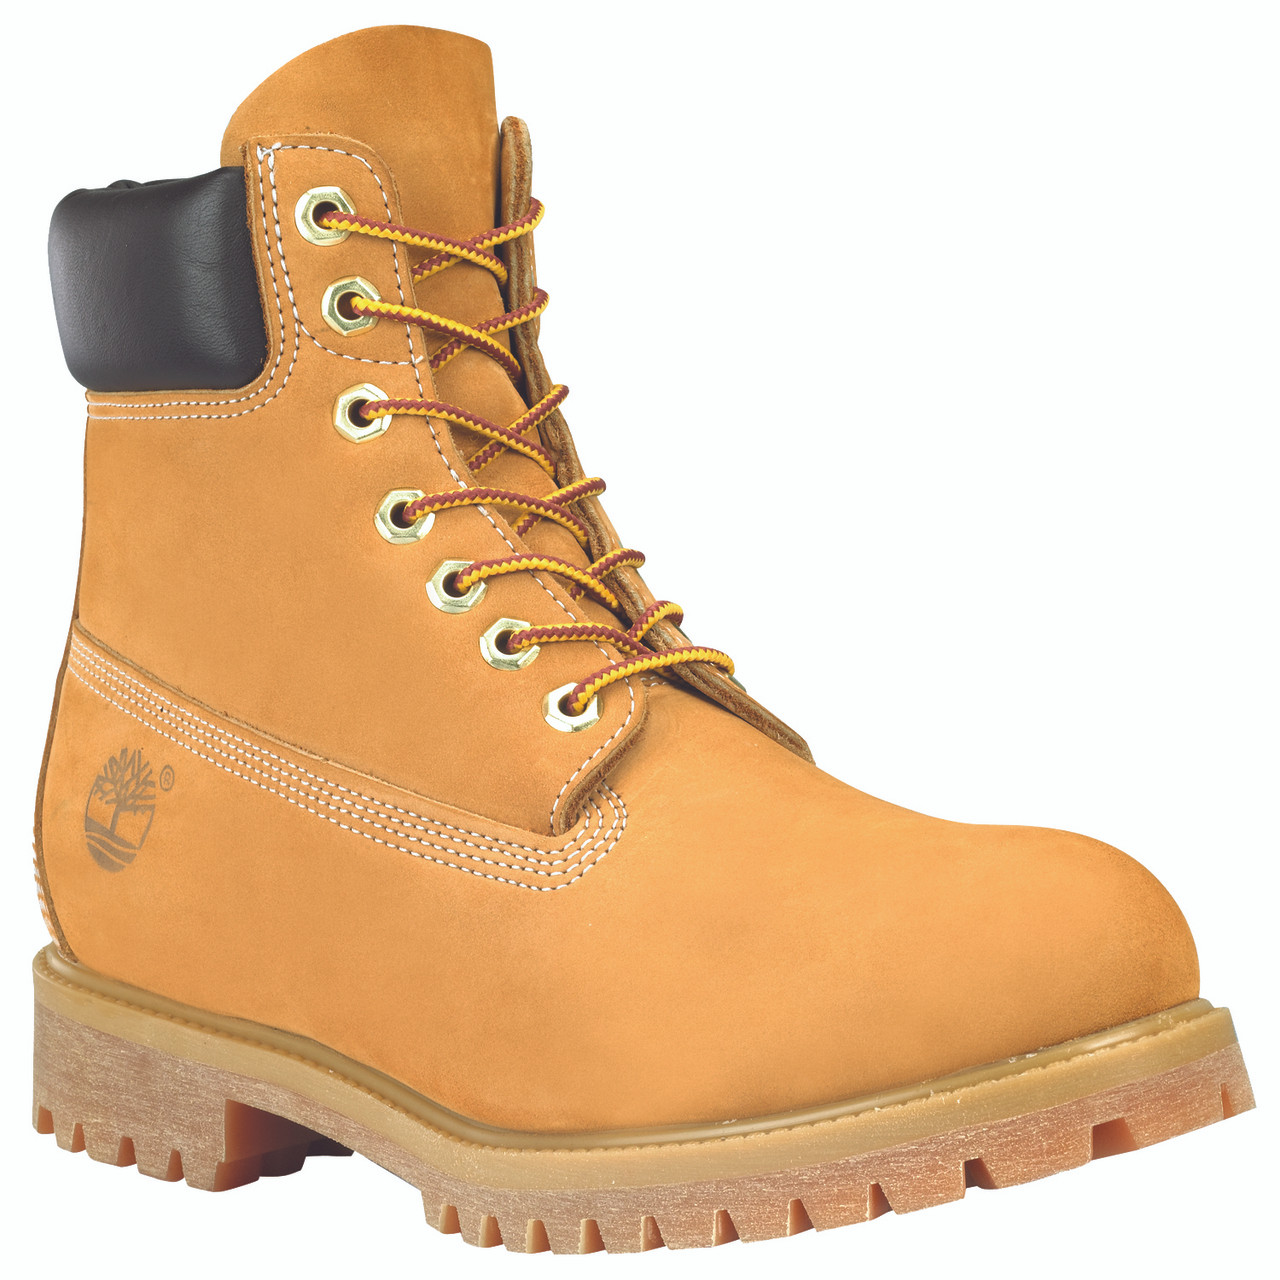 2a3fe3ad494d Timberland Mens 6-Inch Premium Waterproof Boot Wheat Nubuck ...